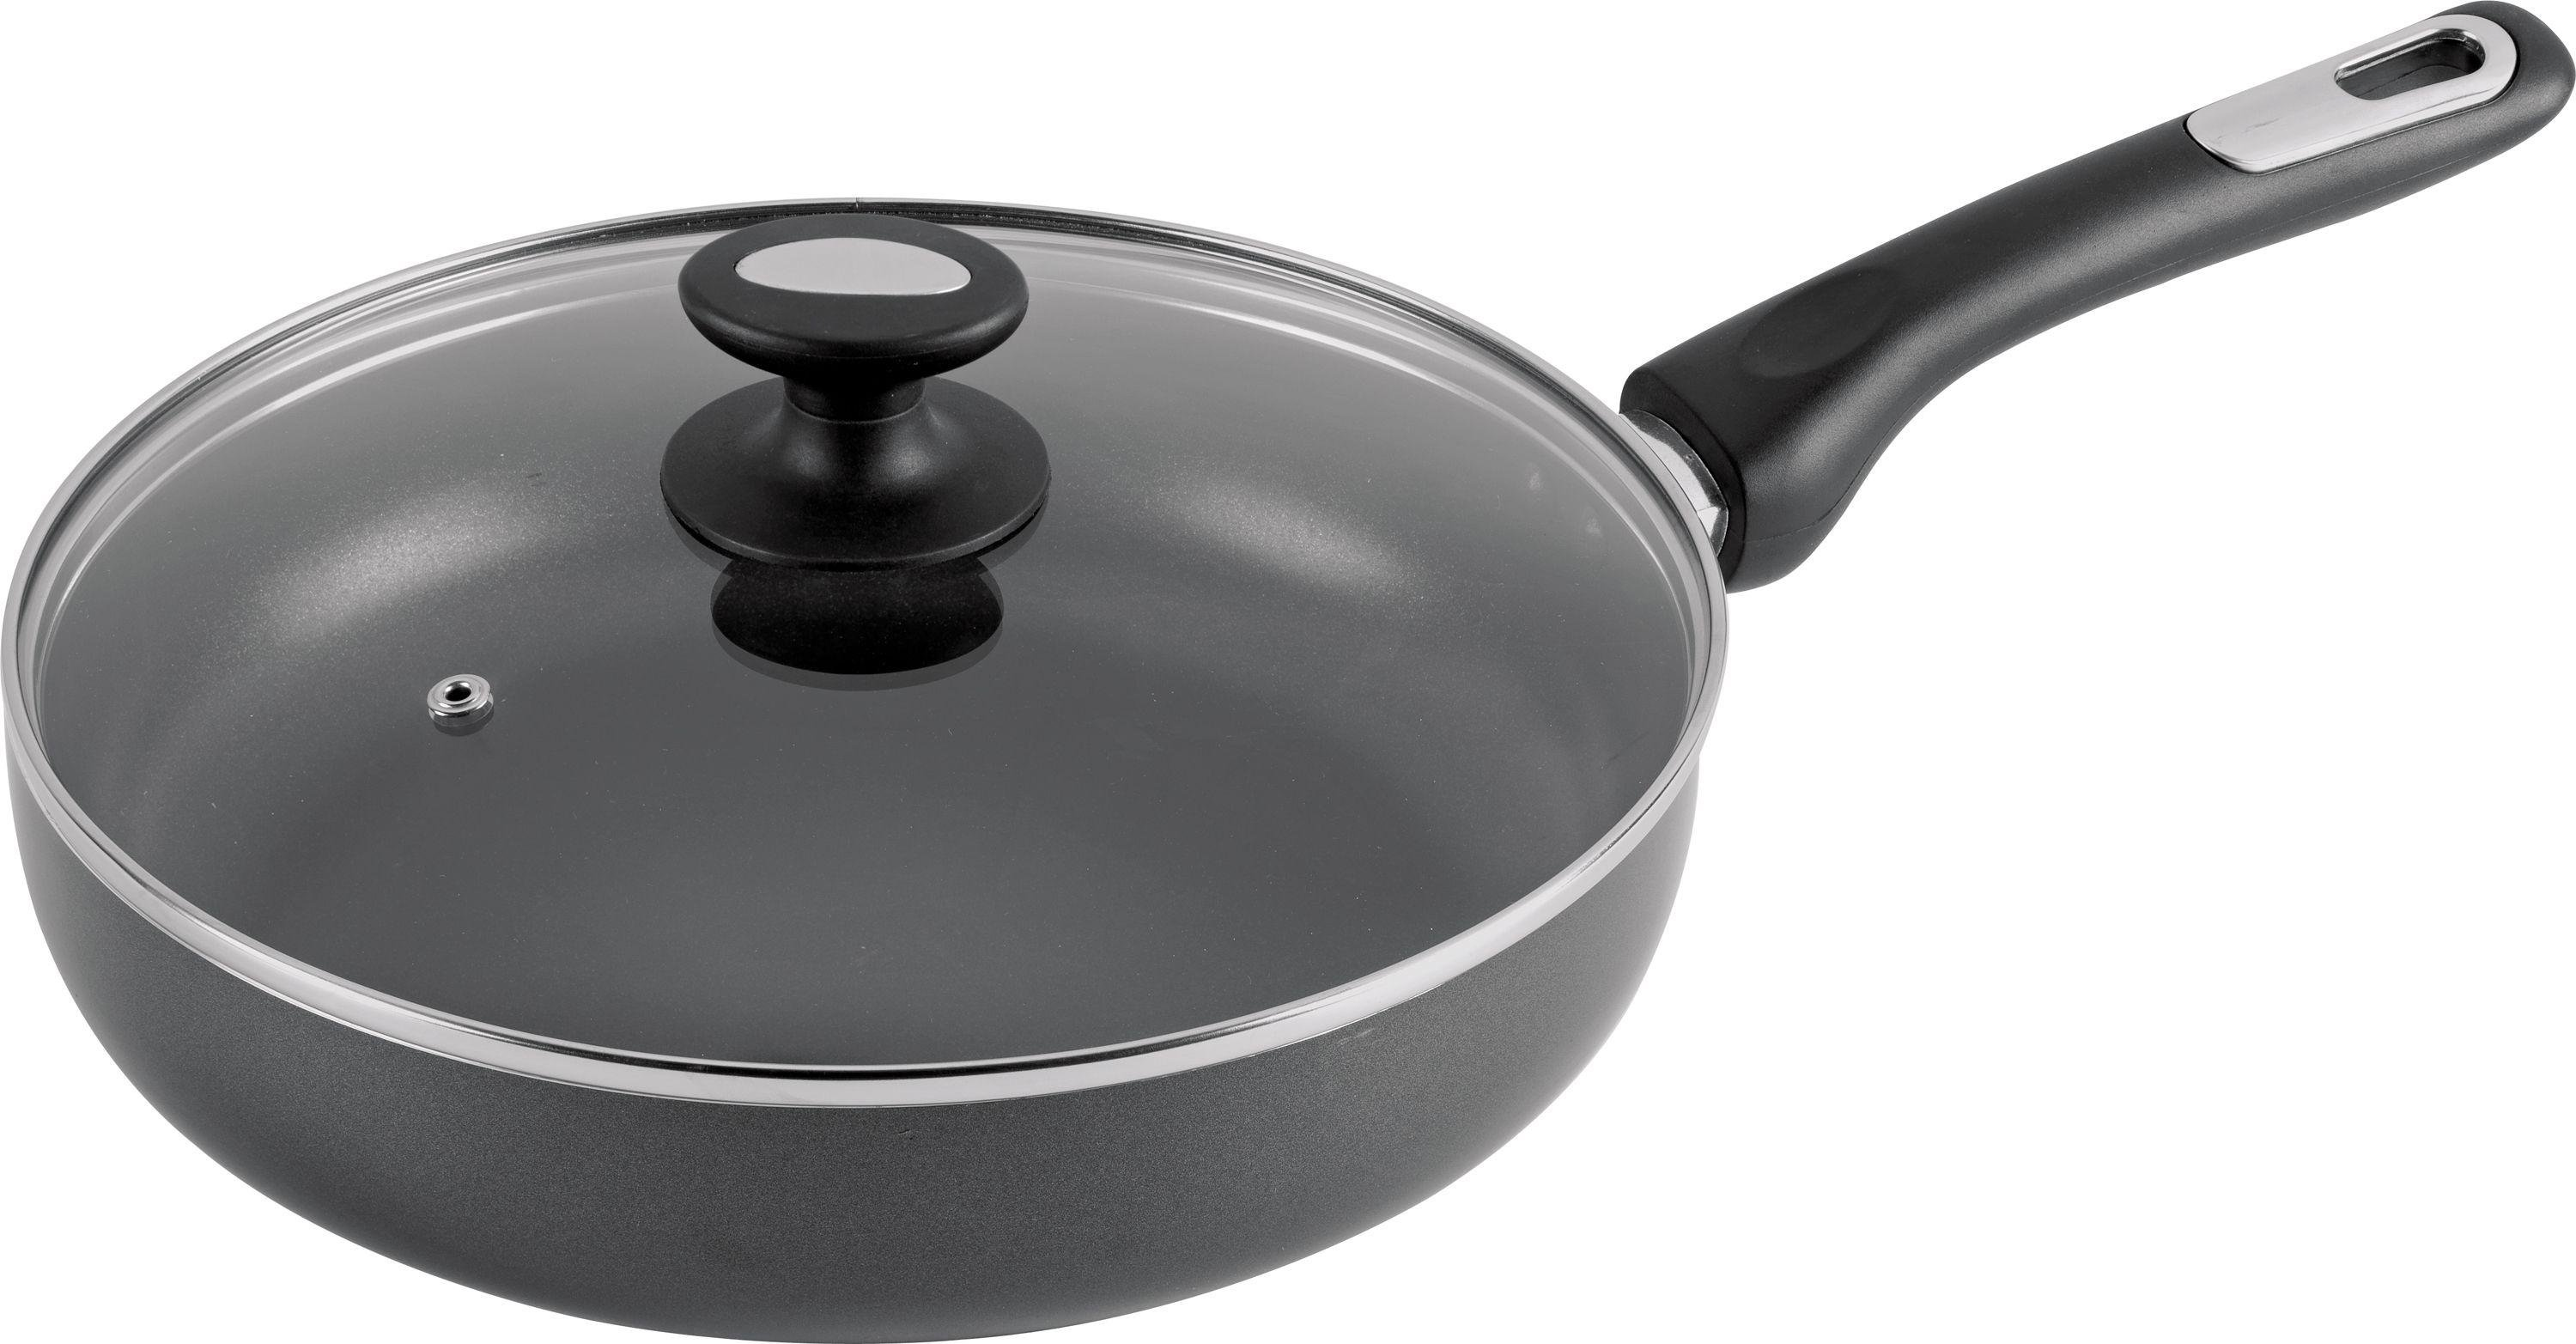 ready-steady-cook-26cm-non-stick-saute-pan-with-lid